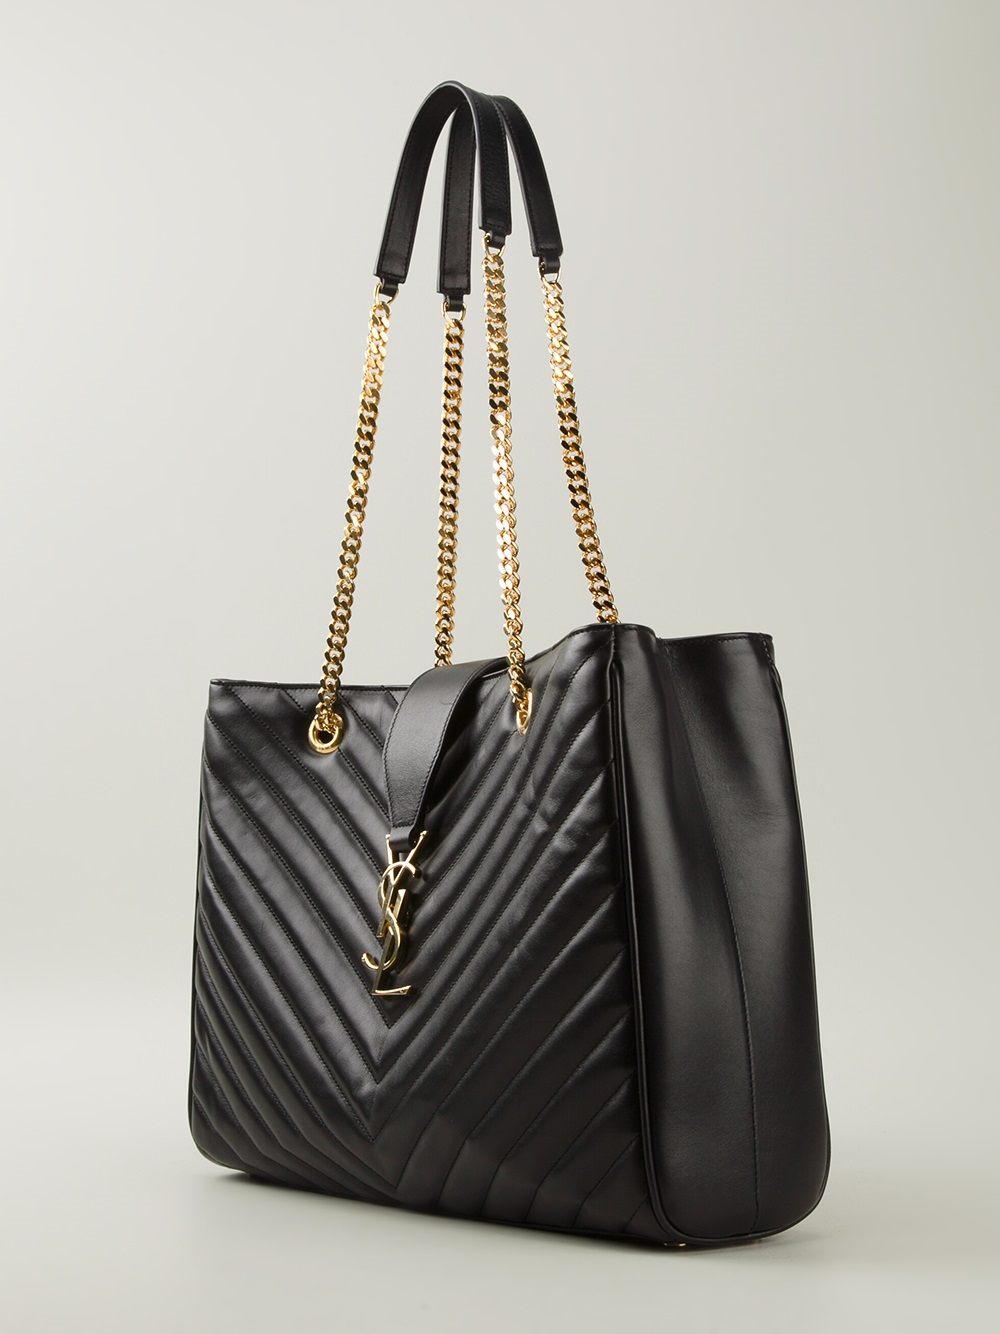 eea767a87f7c Lyst - Saint Laurent Small Quilted Tote Bag in Black